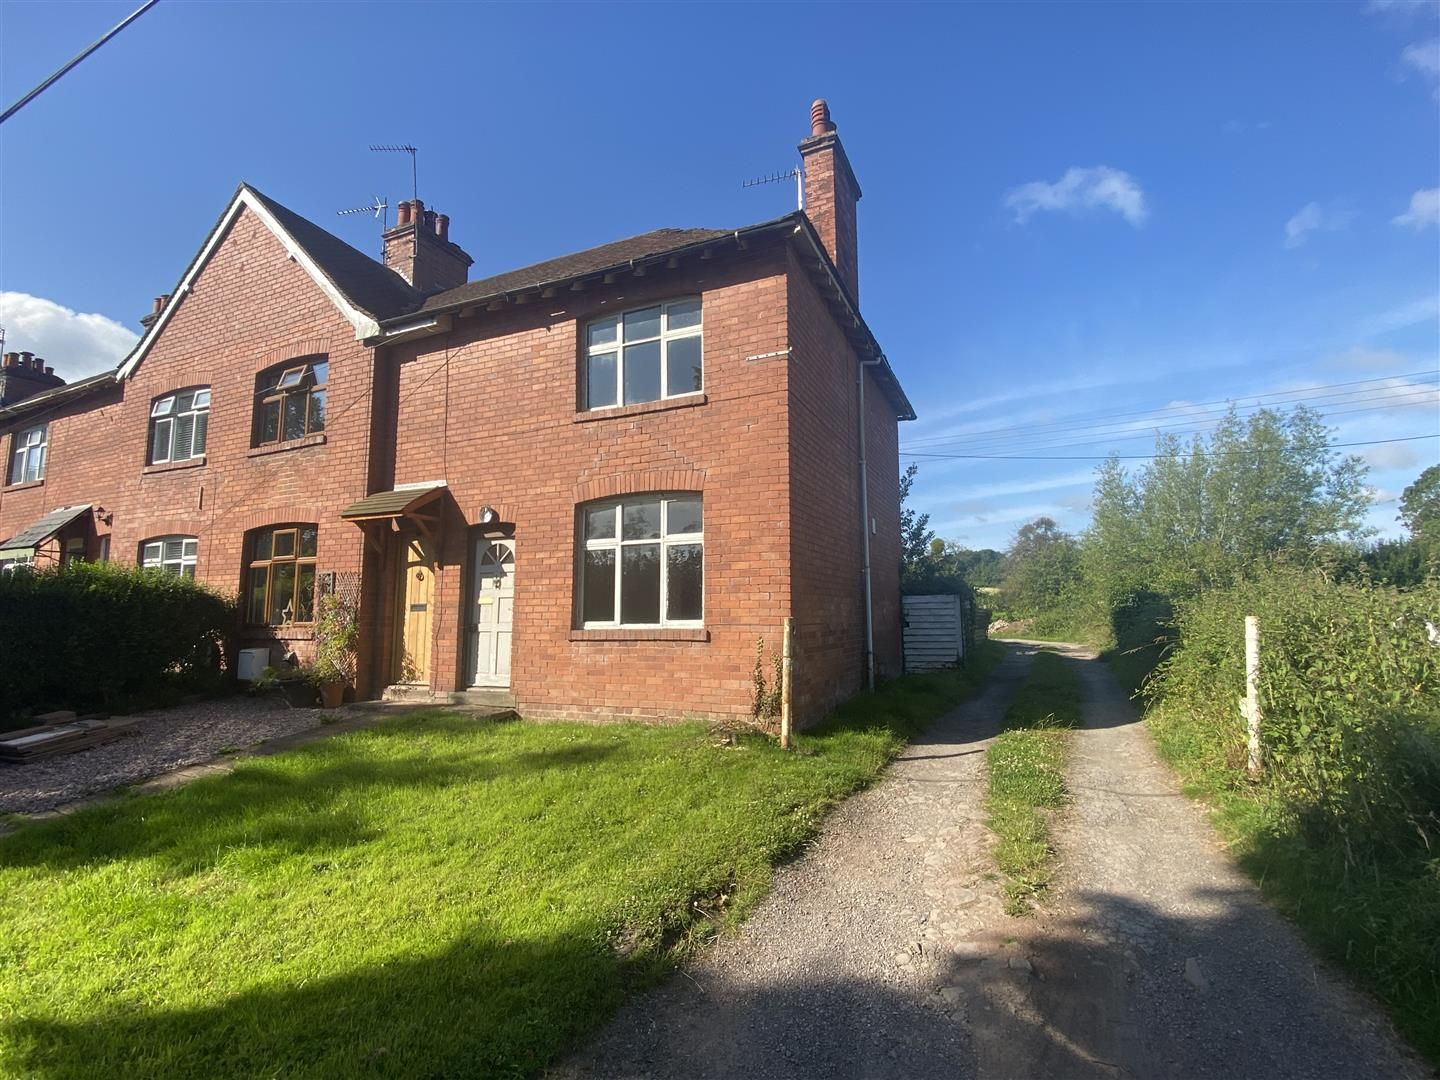 3 bed end of terrace for sale in Sutton St. Nicholas, HR1